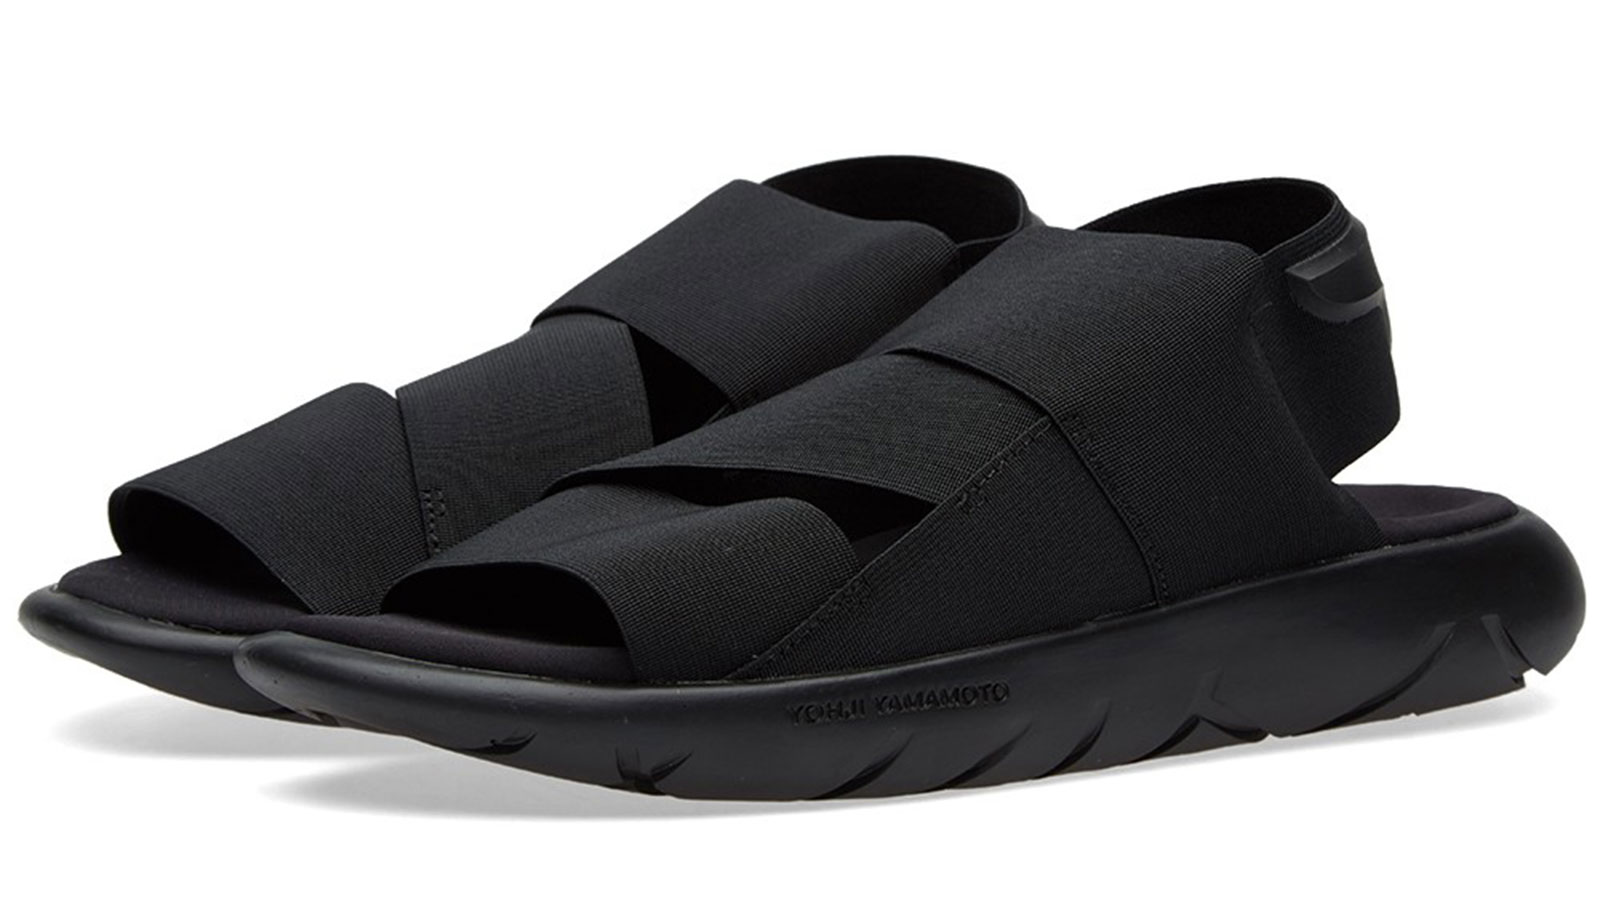 23 Of The Best Sandals for Men You Can